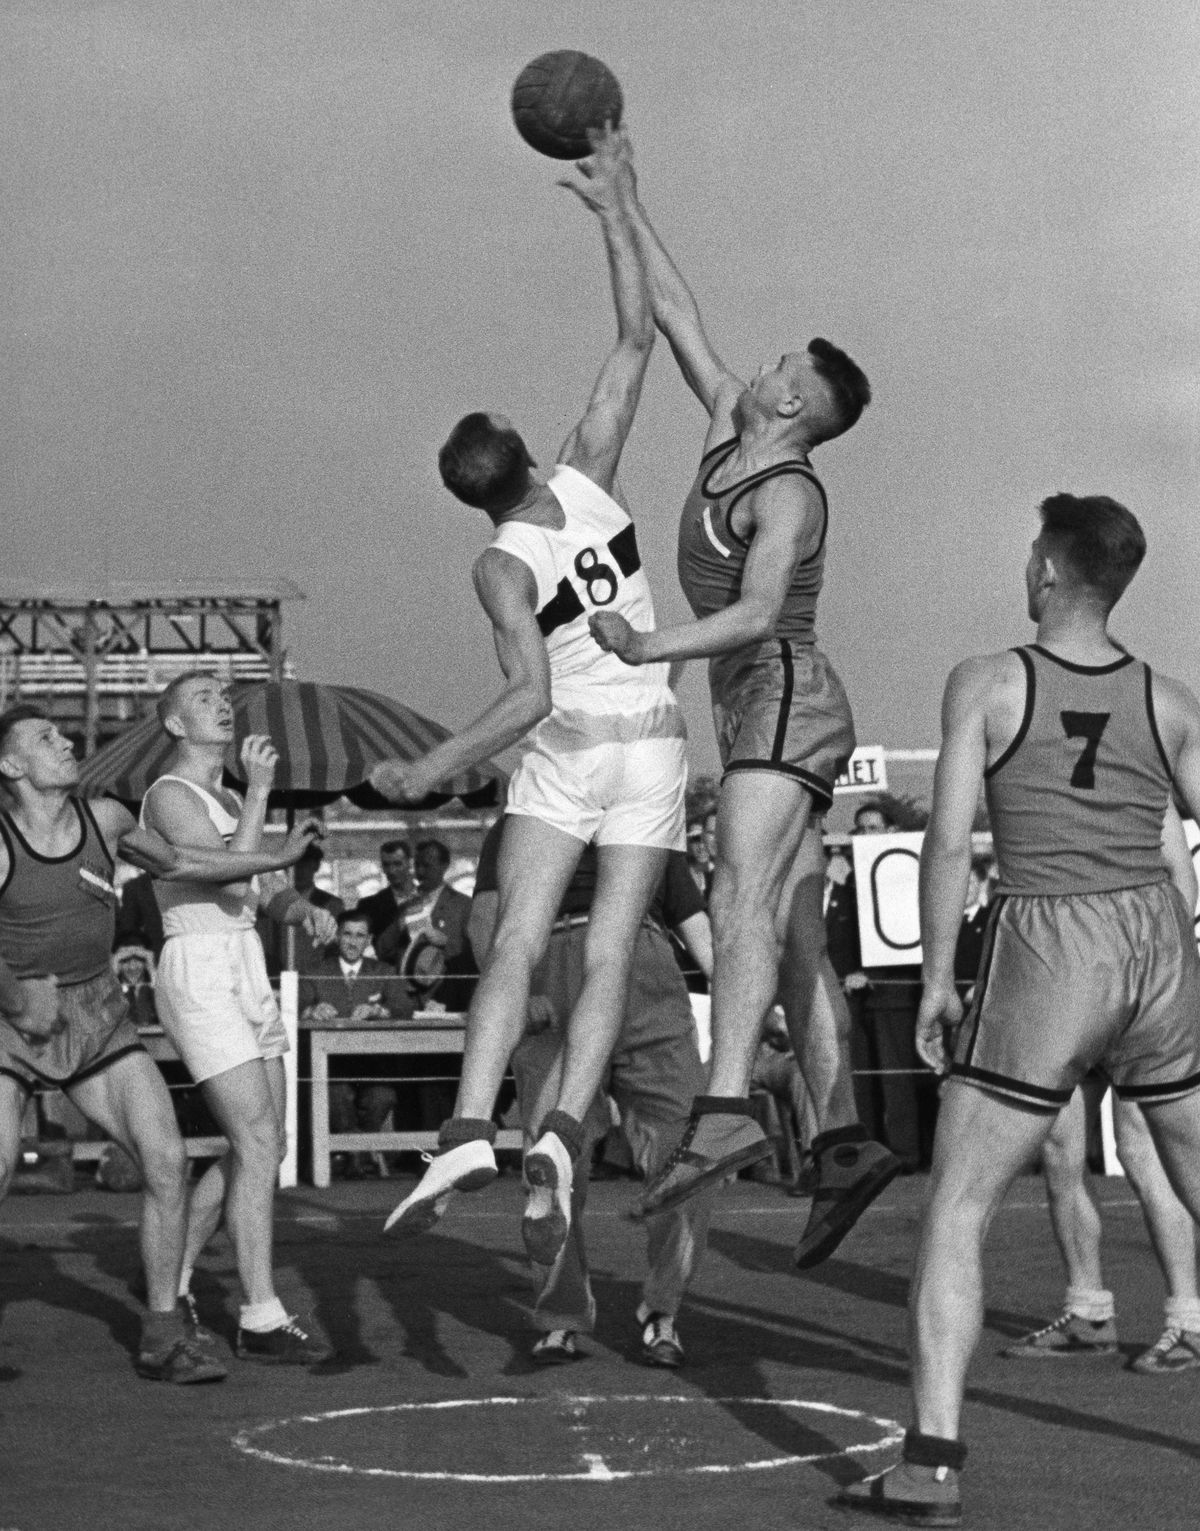 Basketball, scene from a match, probably from the 1936 Olympics